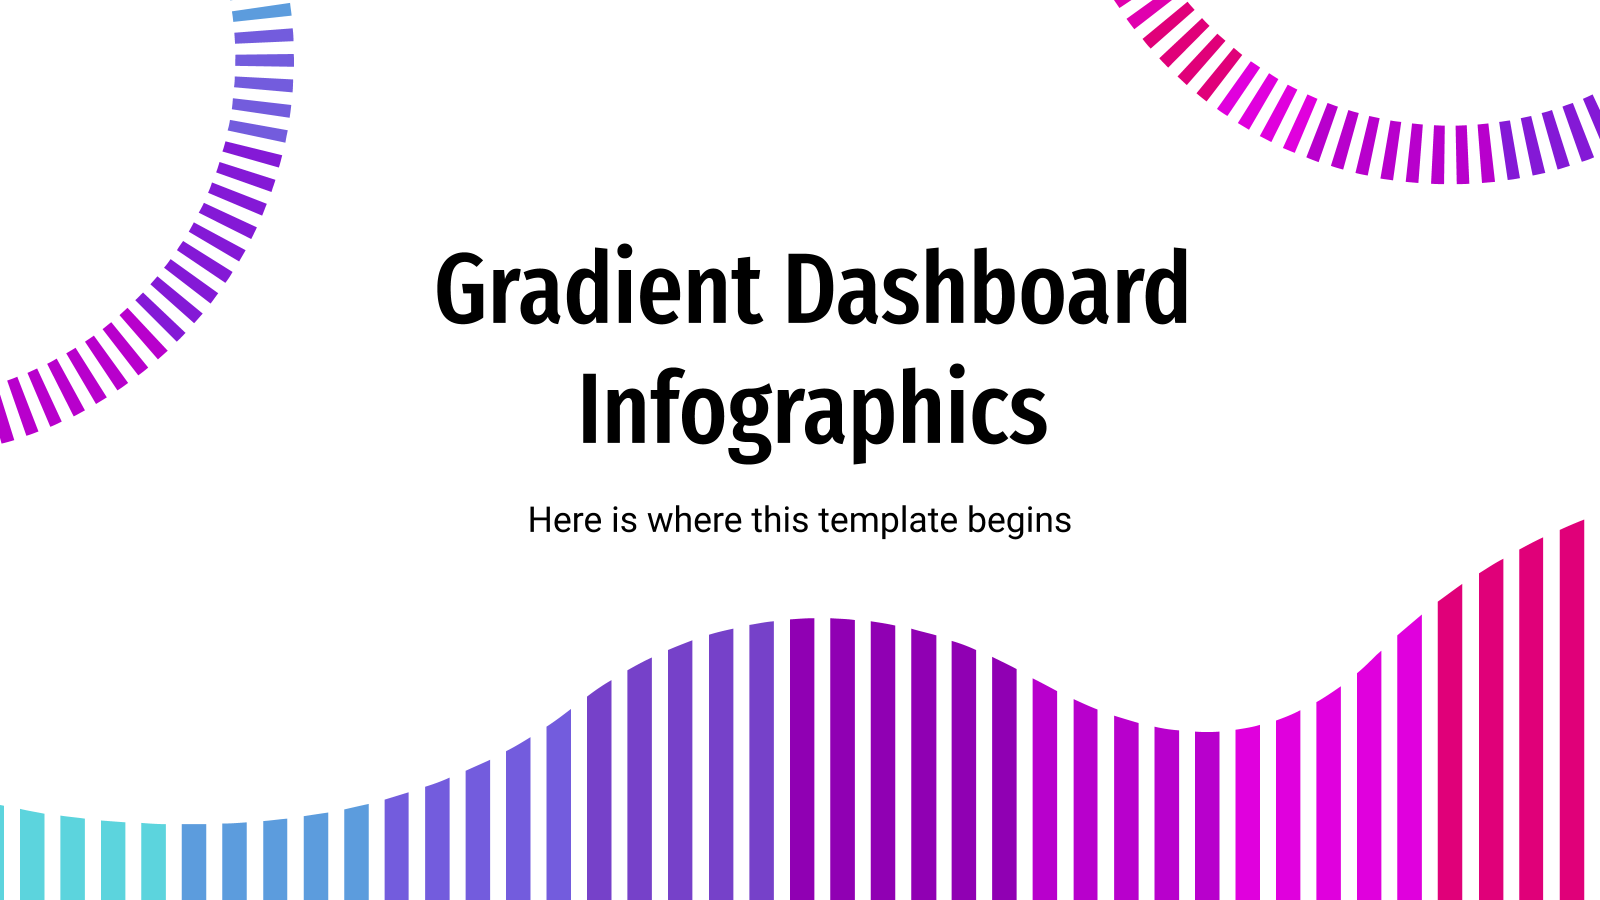 Gradient Dashboard Infographics presentation template